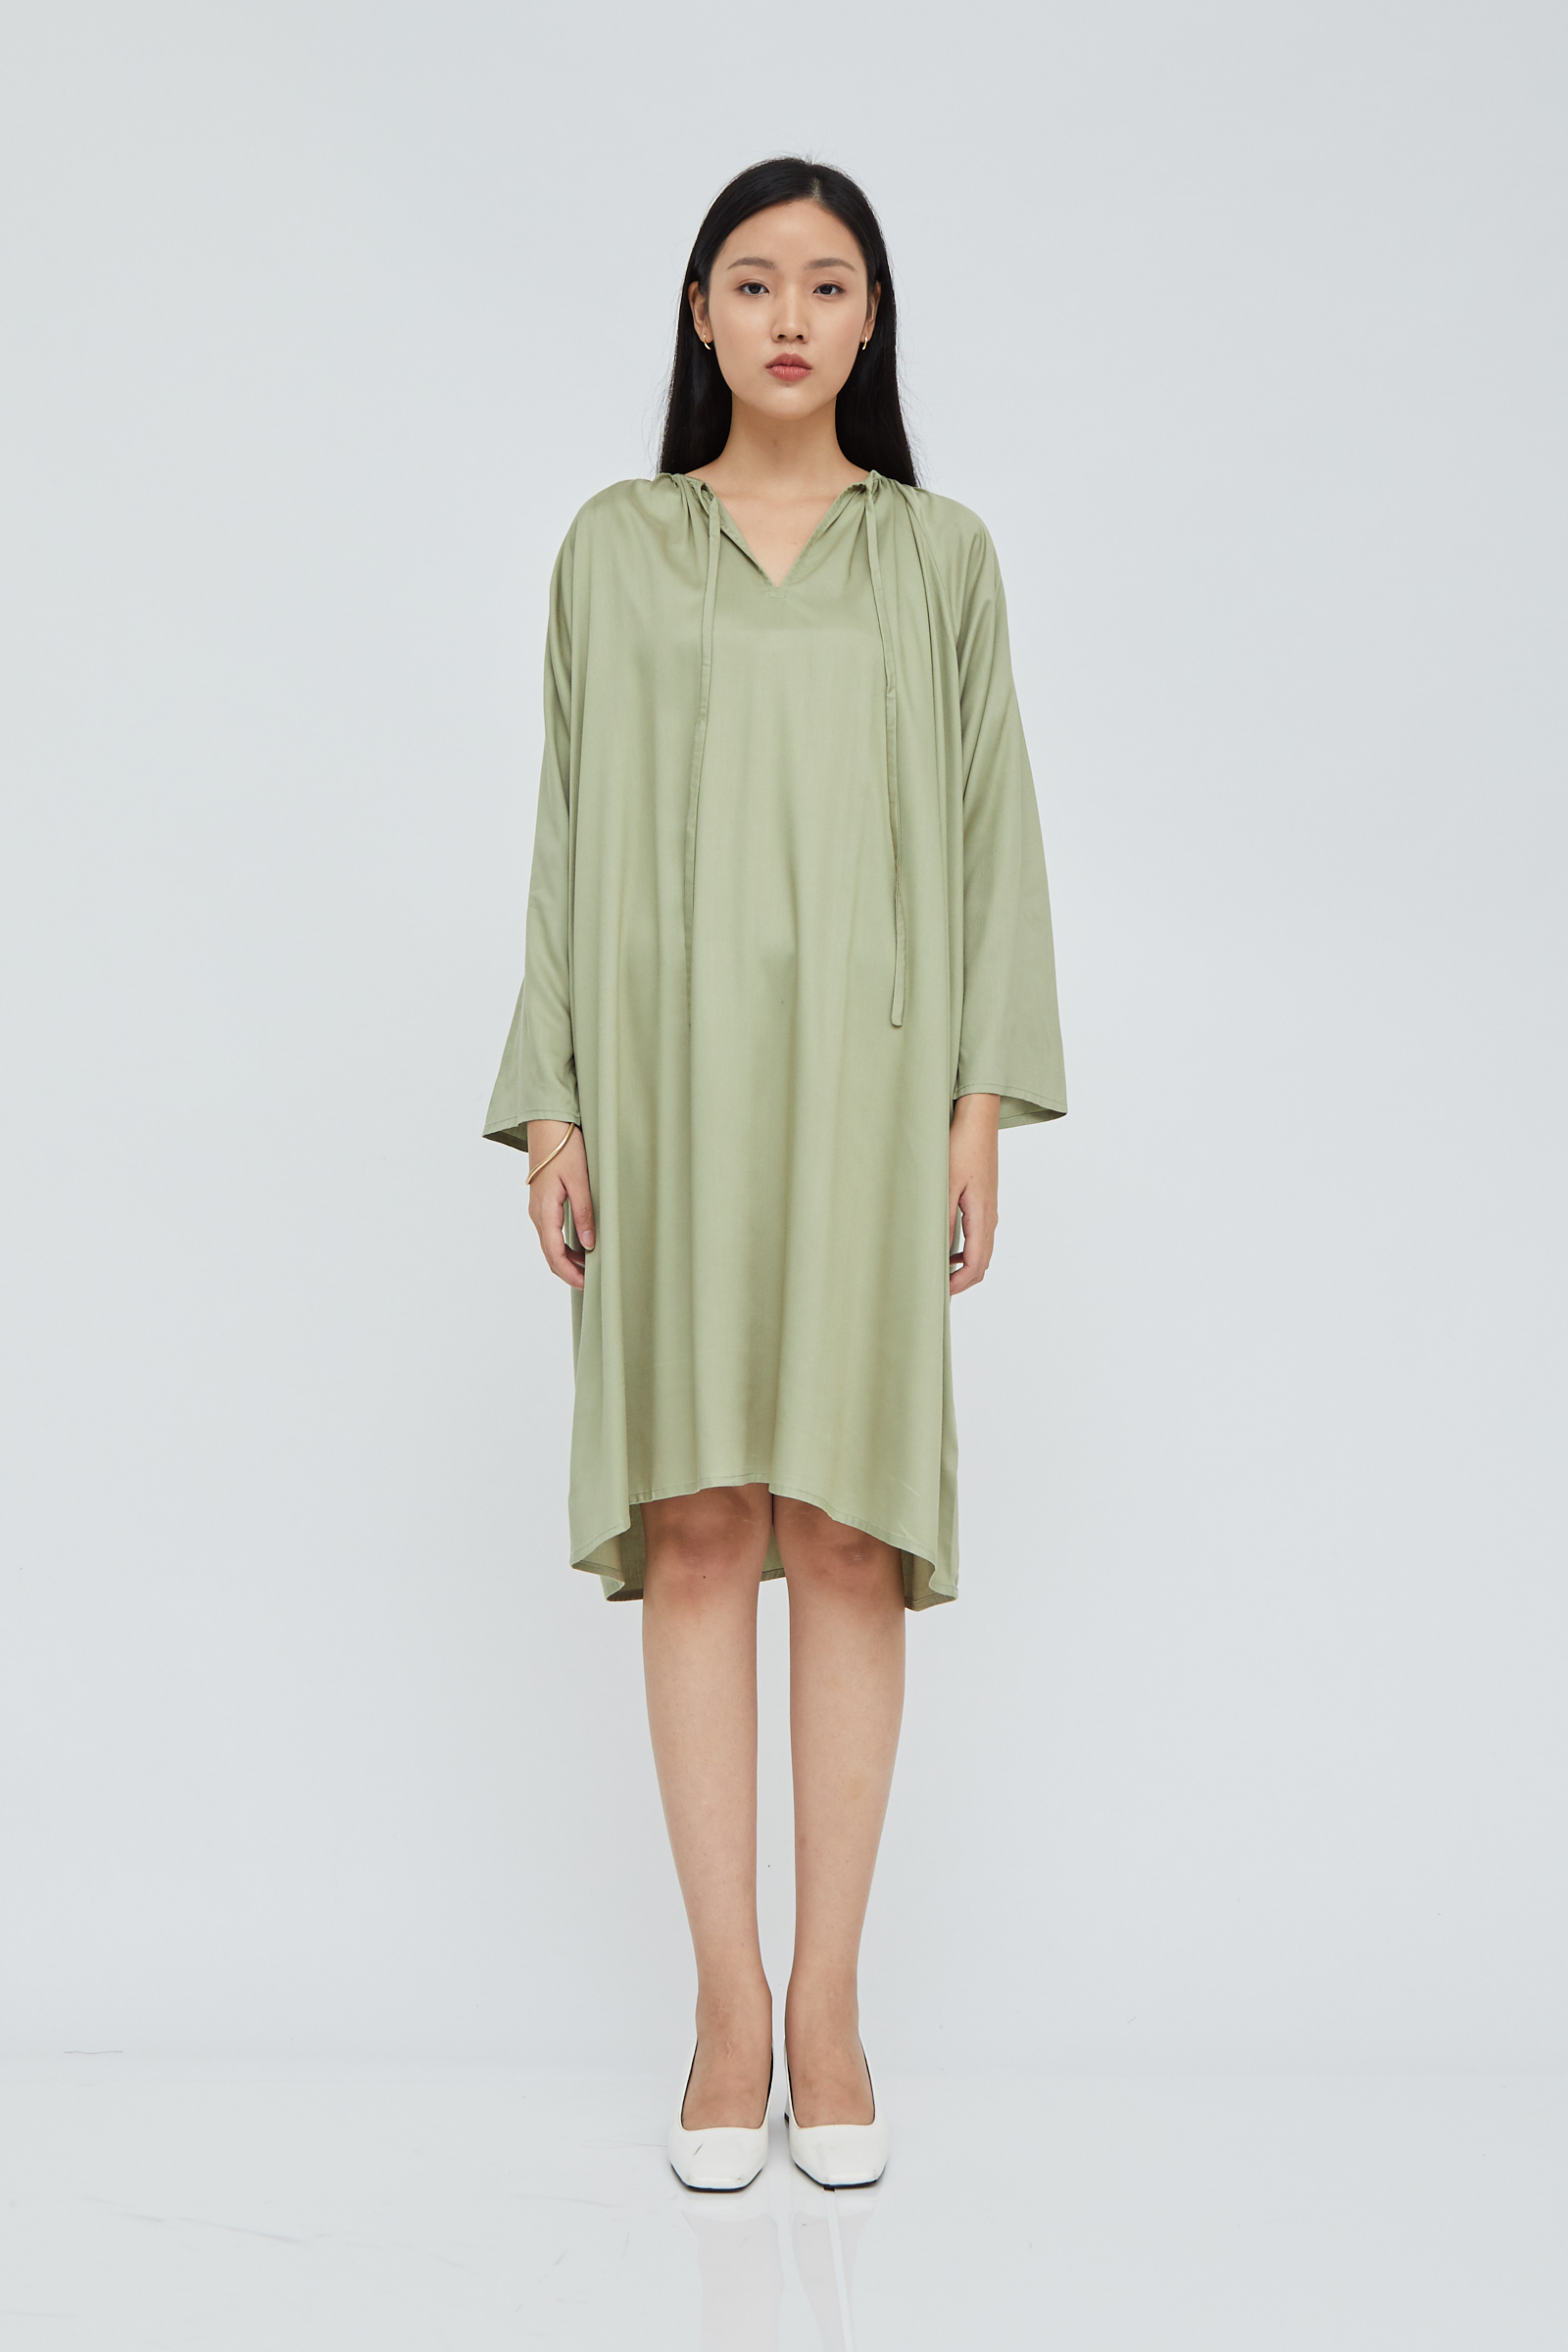 Shopatvelvet Hugh Dress Sage